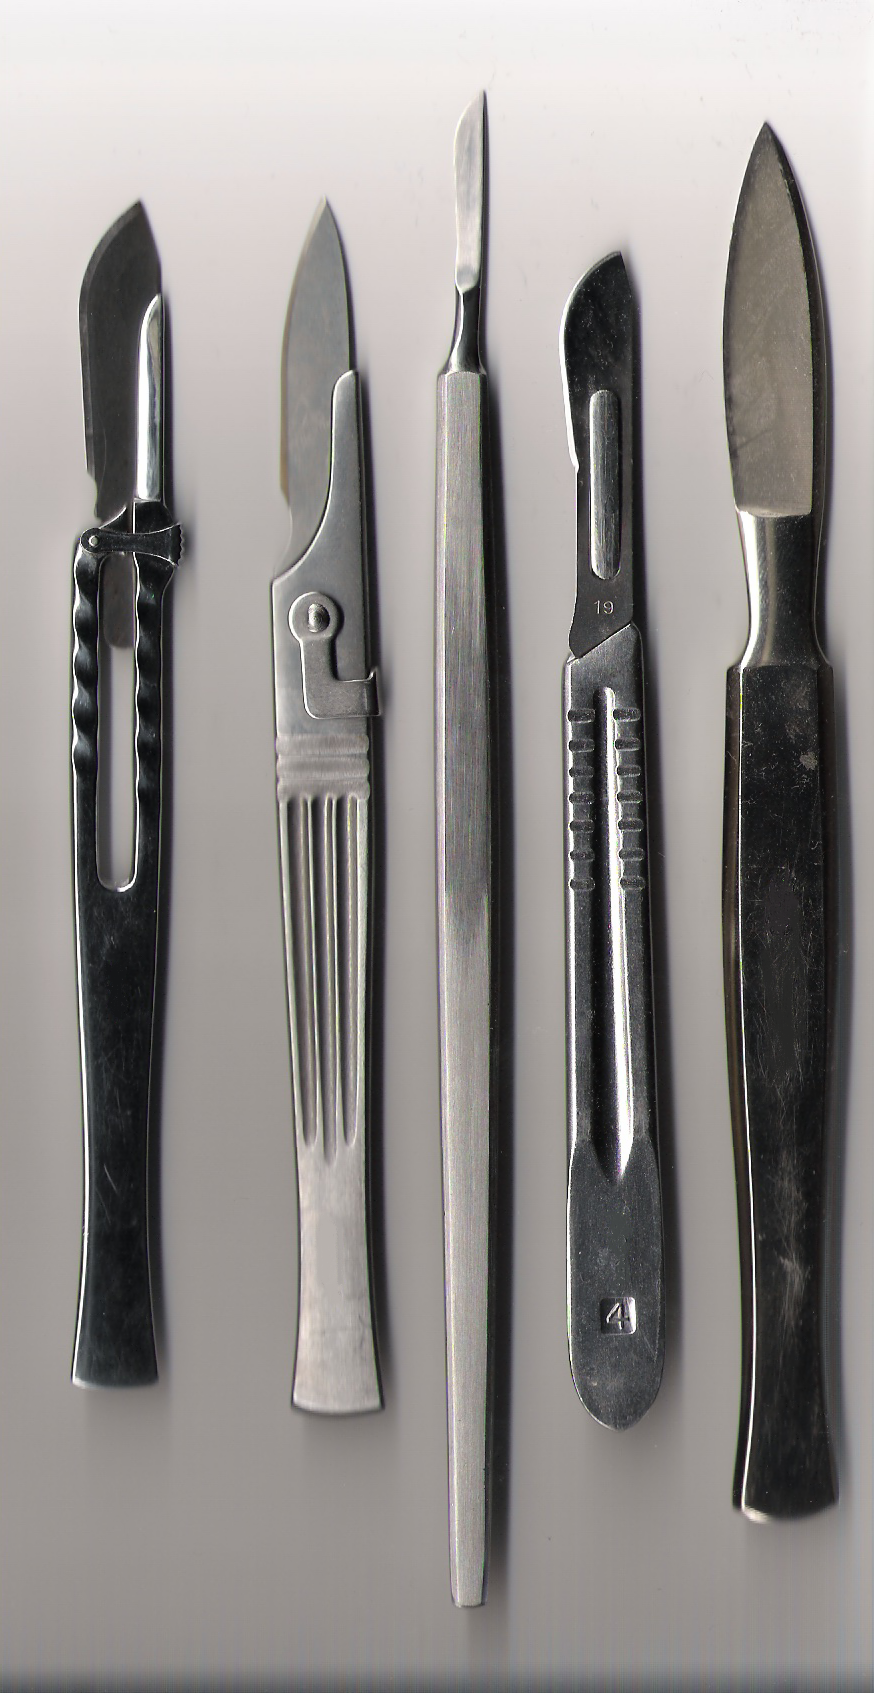 Surgical instrument - Wikipedia